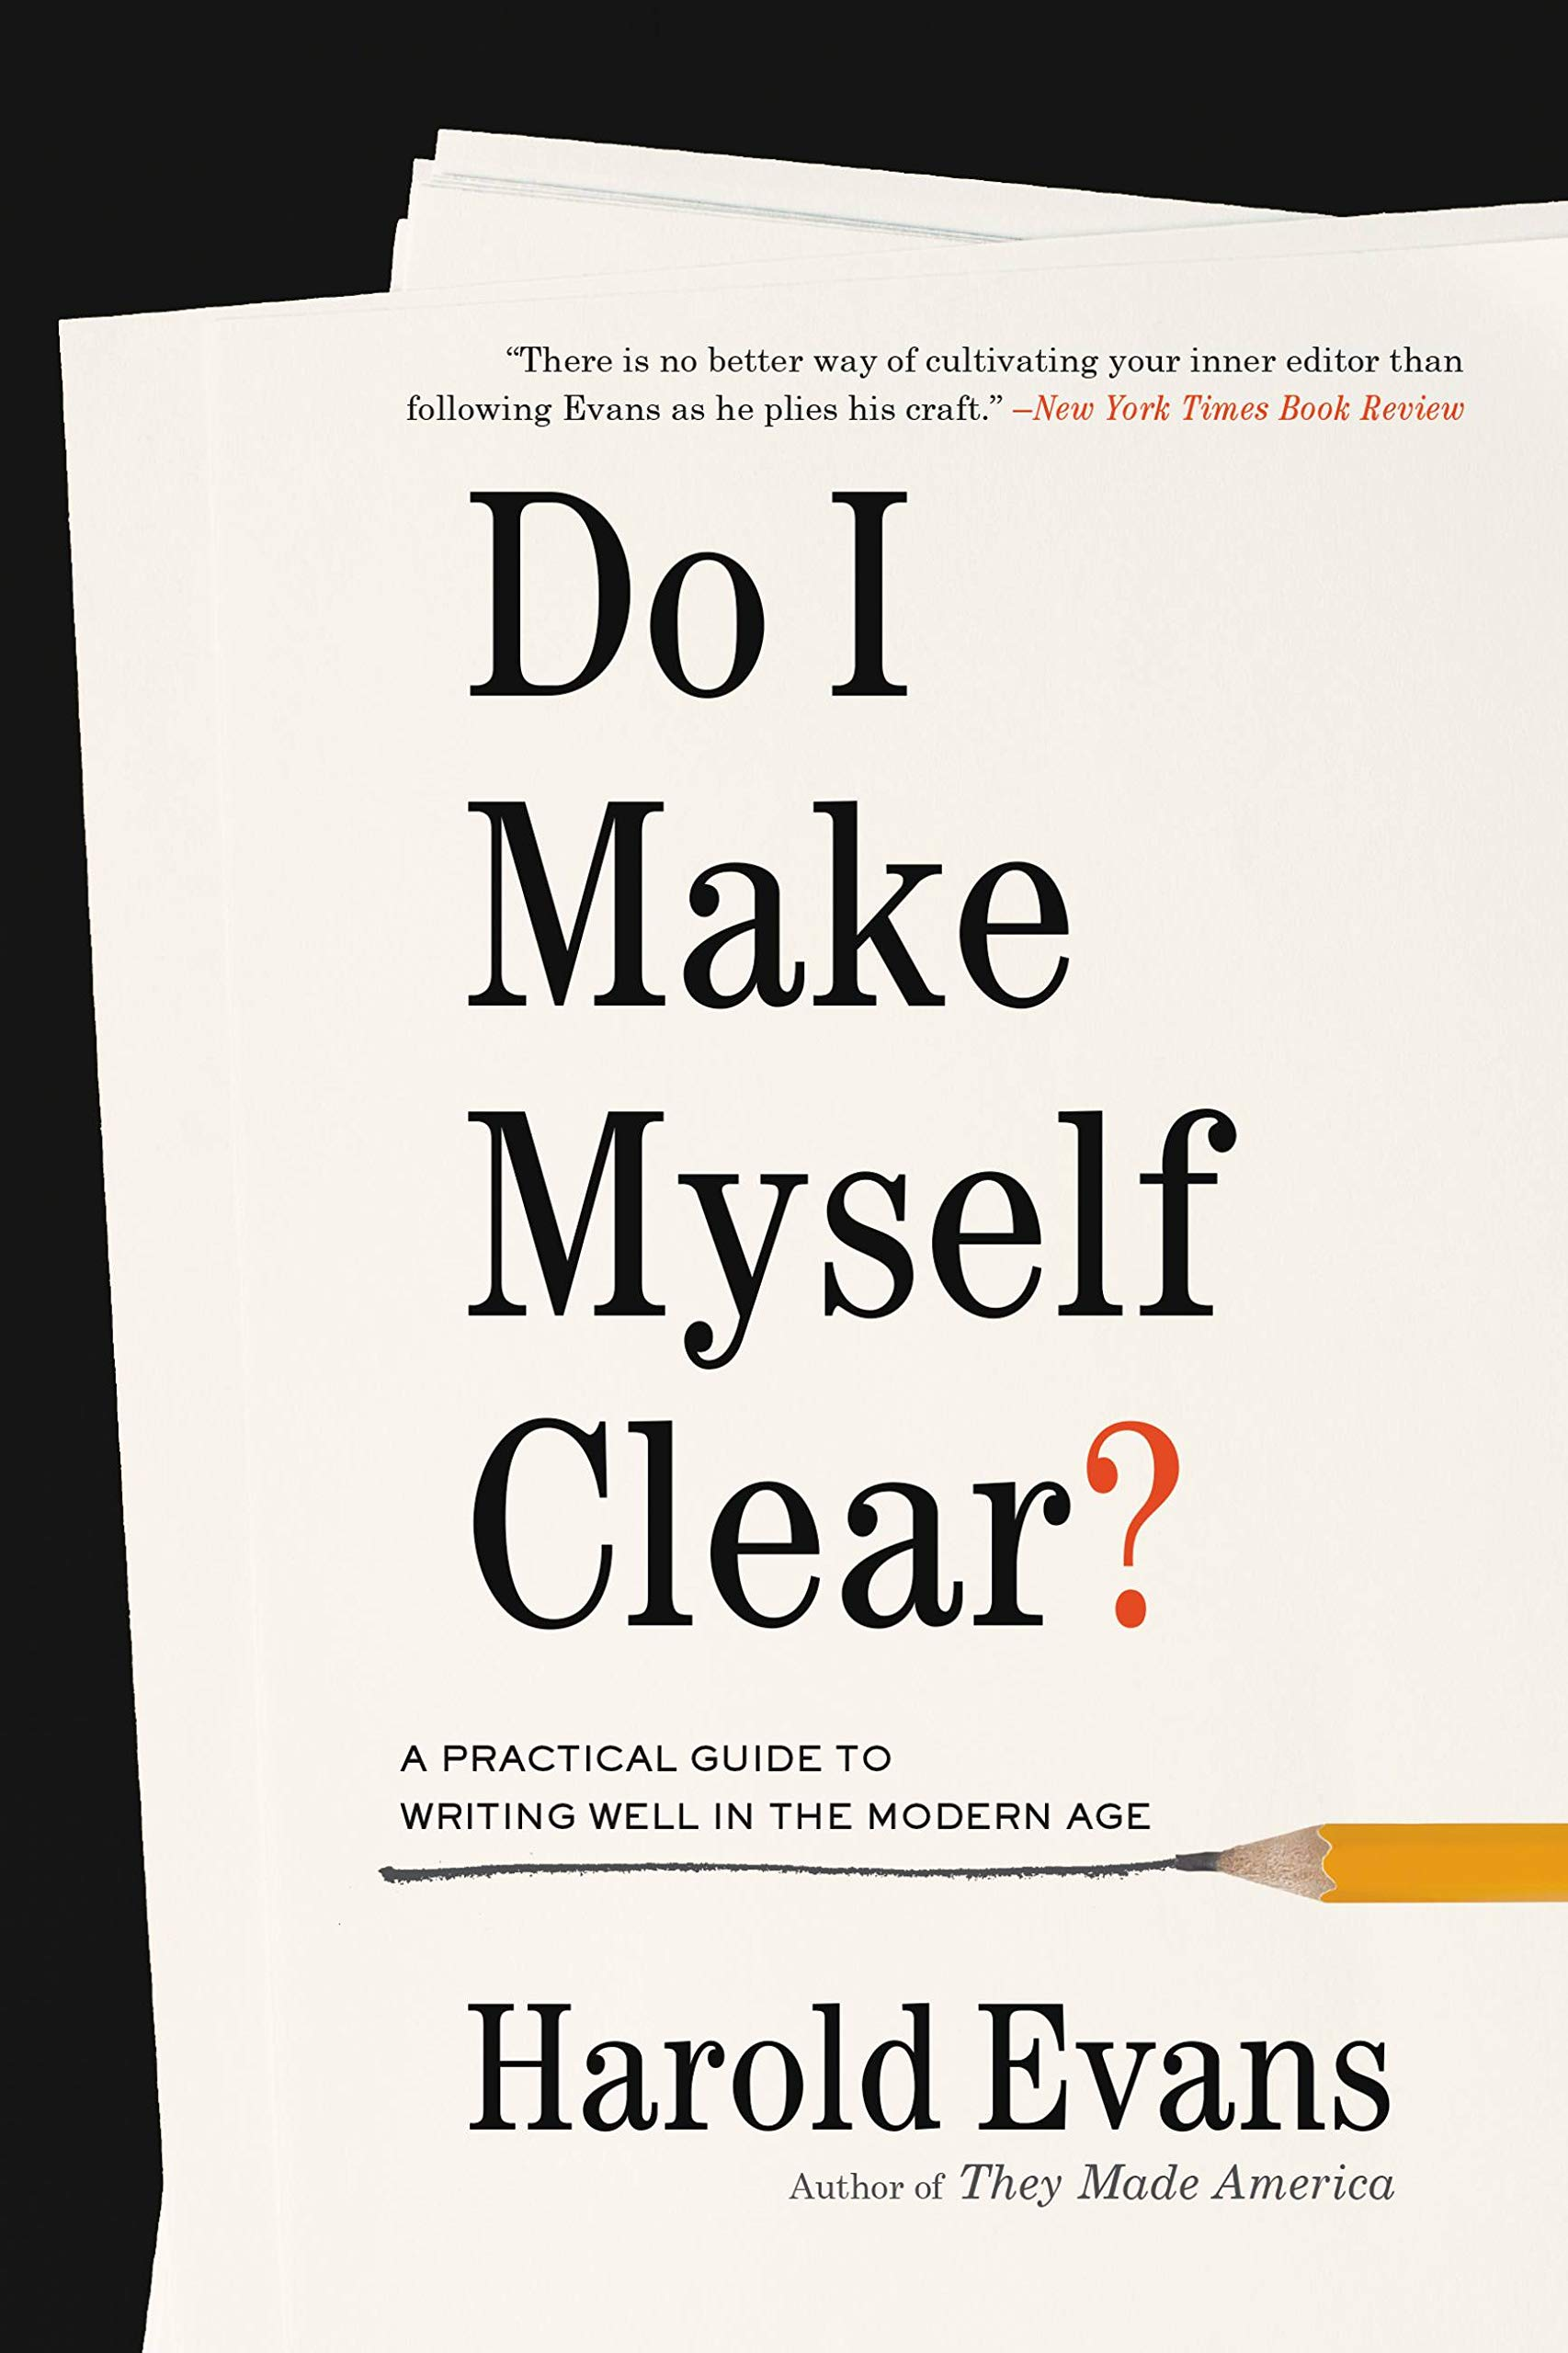 The cover of Do I Make Myself Clear?